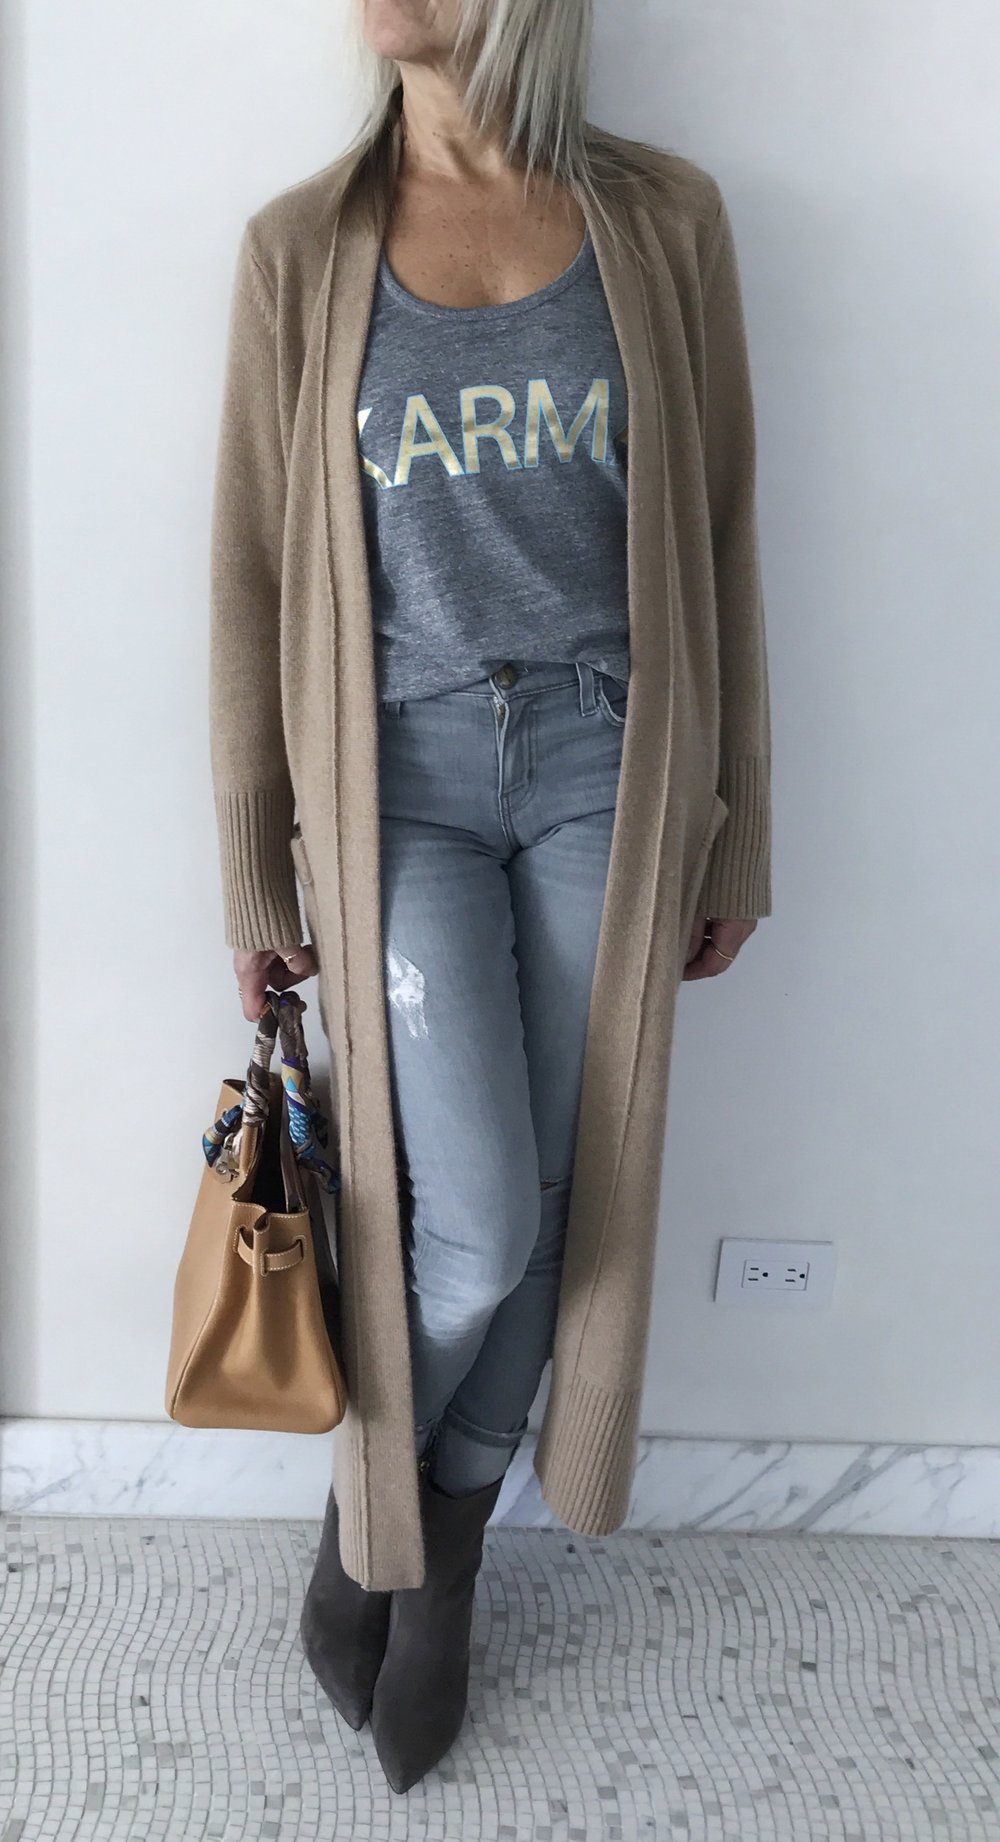 This long cashmere cardigan or sweater coat from Lou & Grey is the perfect transition piece and is as comfy as it looks. It also says chic, modern and TODAY. A huge plus is that it hides literally everything you'd want it to!! Wear it belted or open to boost the lowliest jeans and tee to new heights.